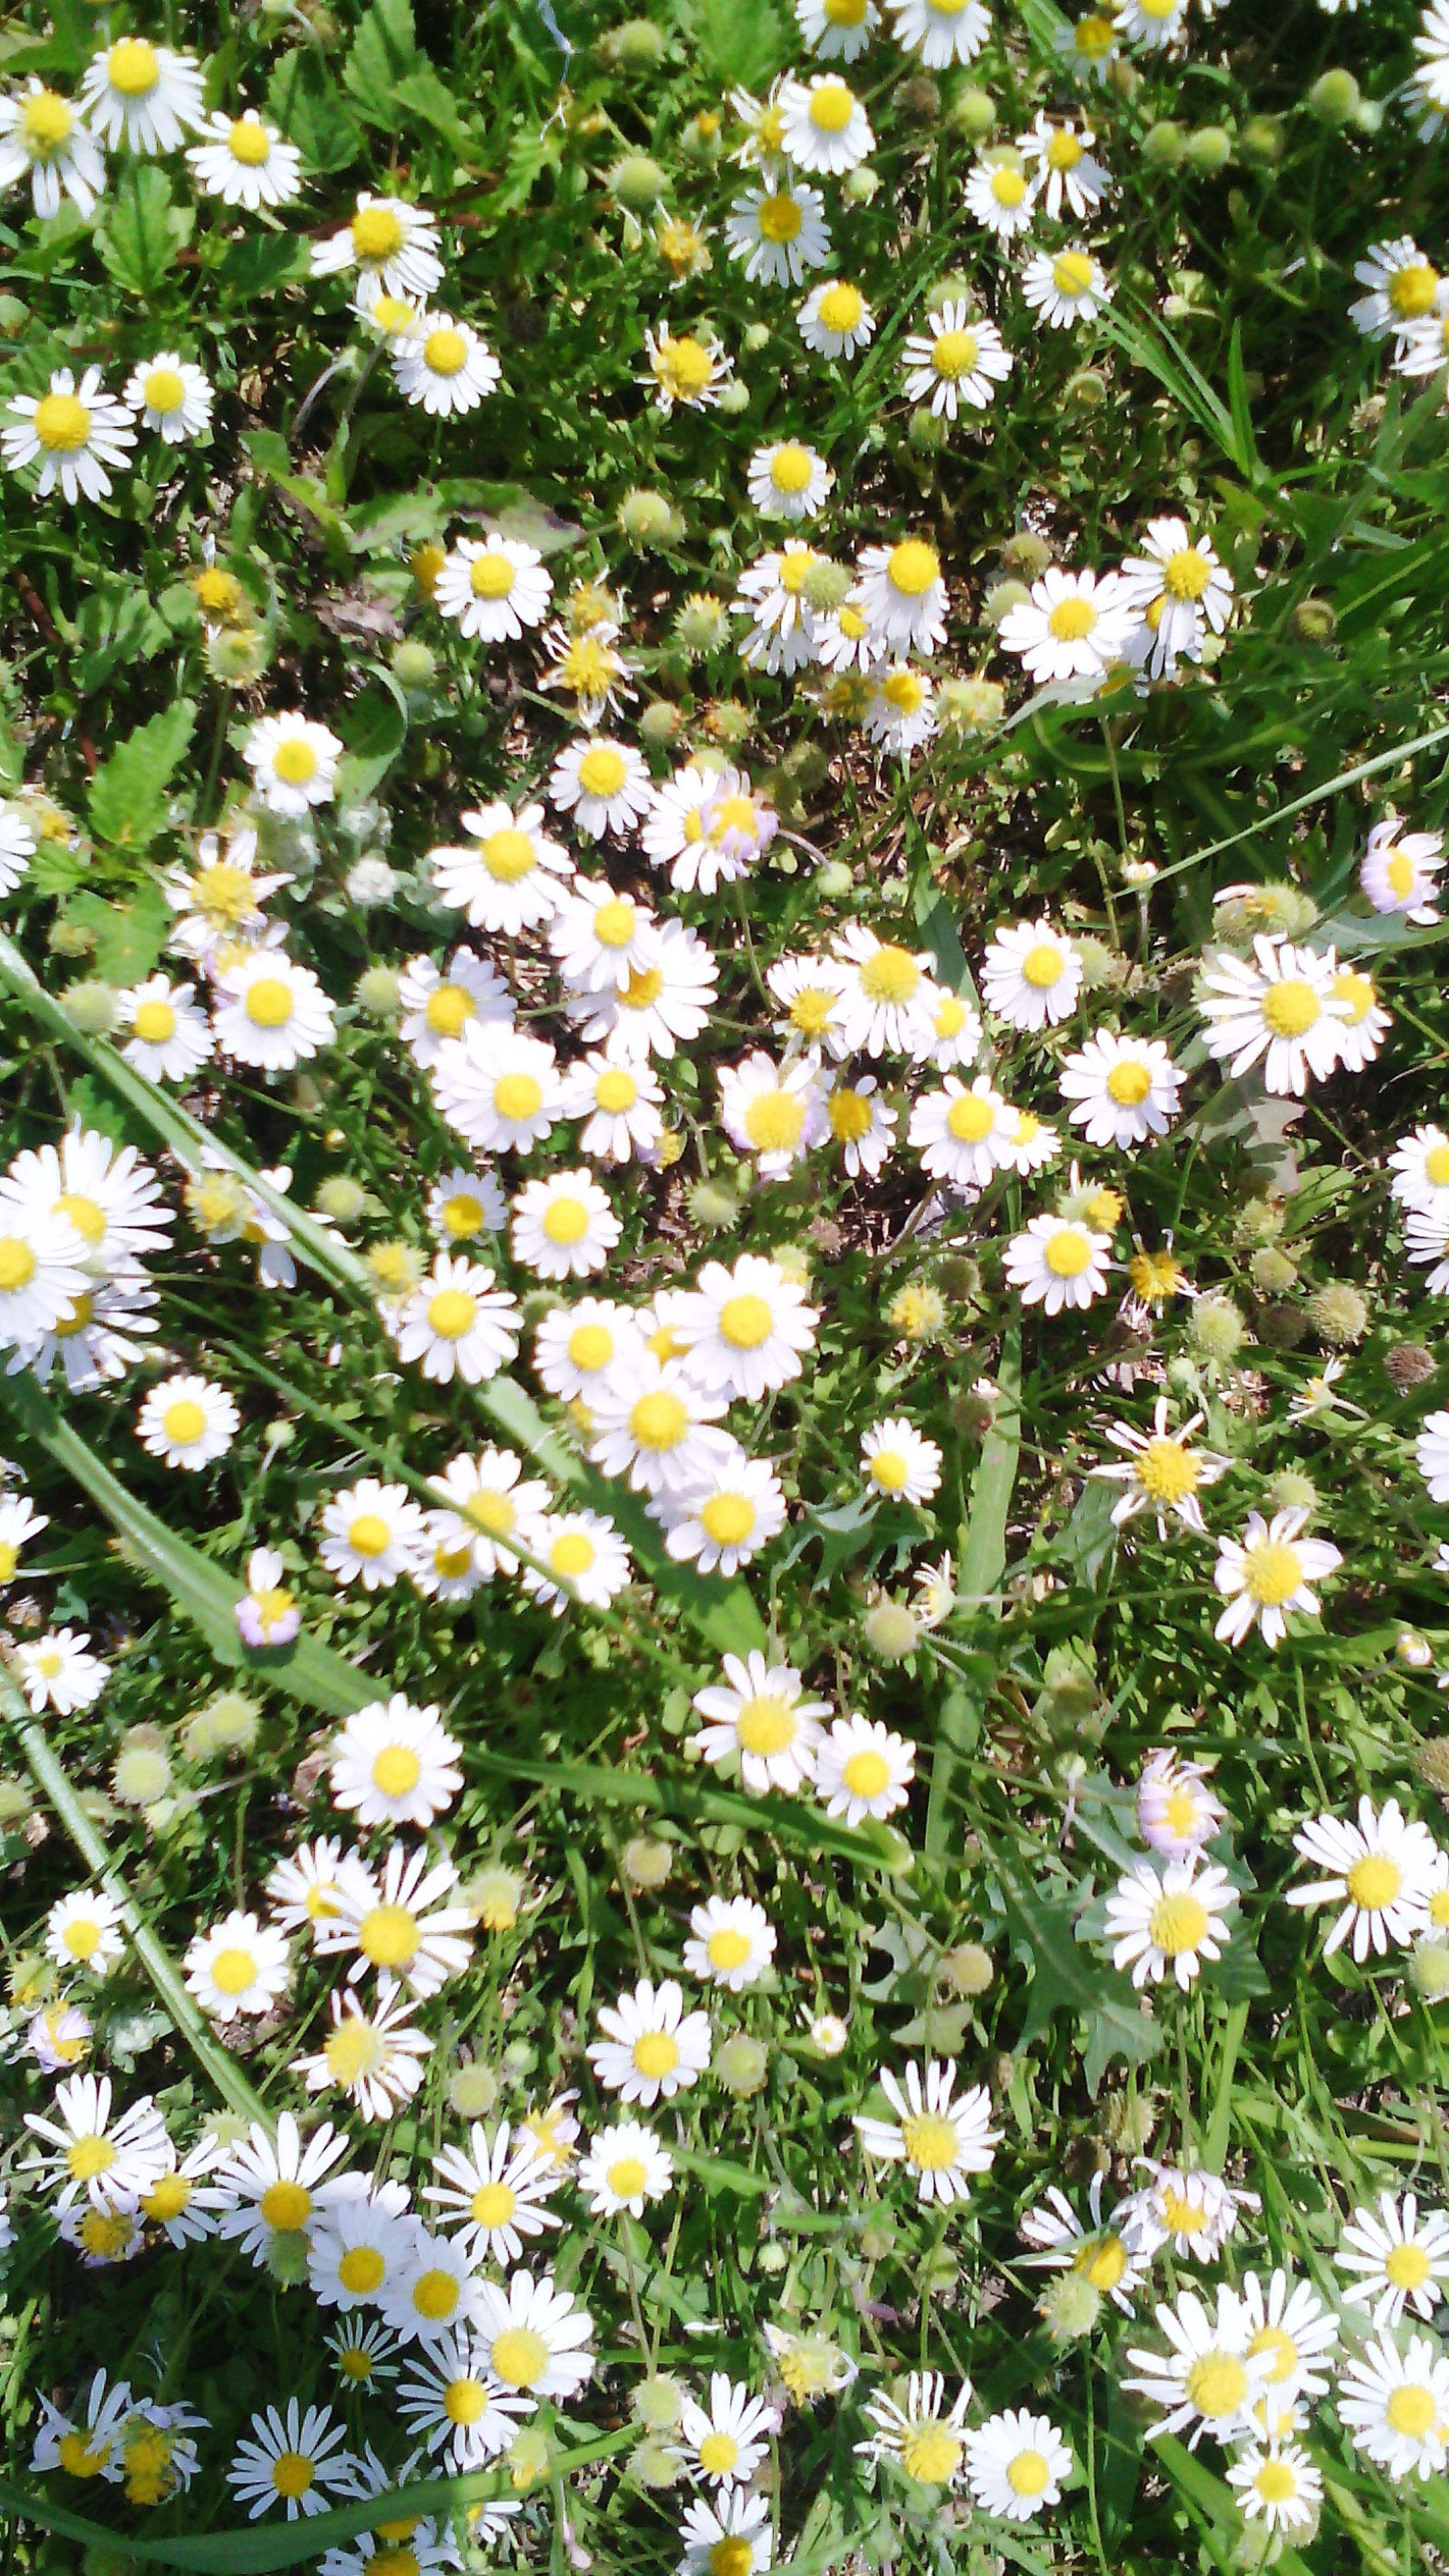 flower, freshness, growth, white color, fragility, petal, daisy, beauty in nature, nature, flower head, high angle view, plant, blooming, full frame, field, backgrounds, white, green color, in bloom, blossom